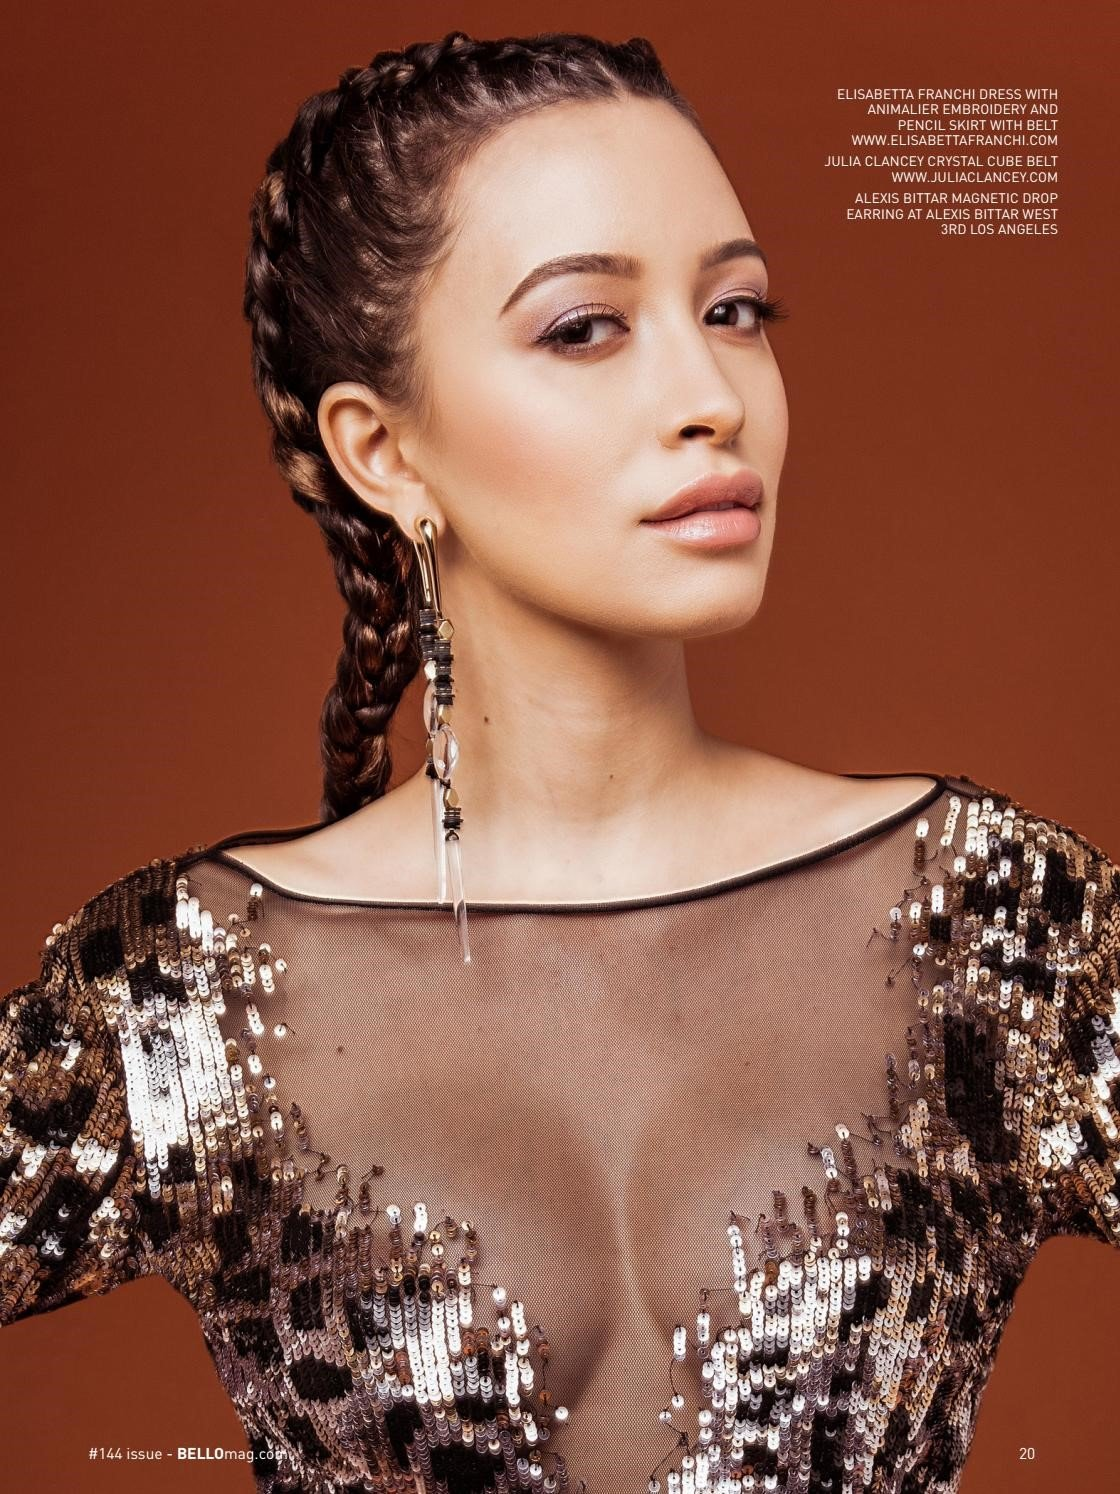 Christian Serratos 9